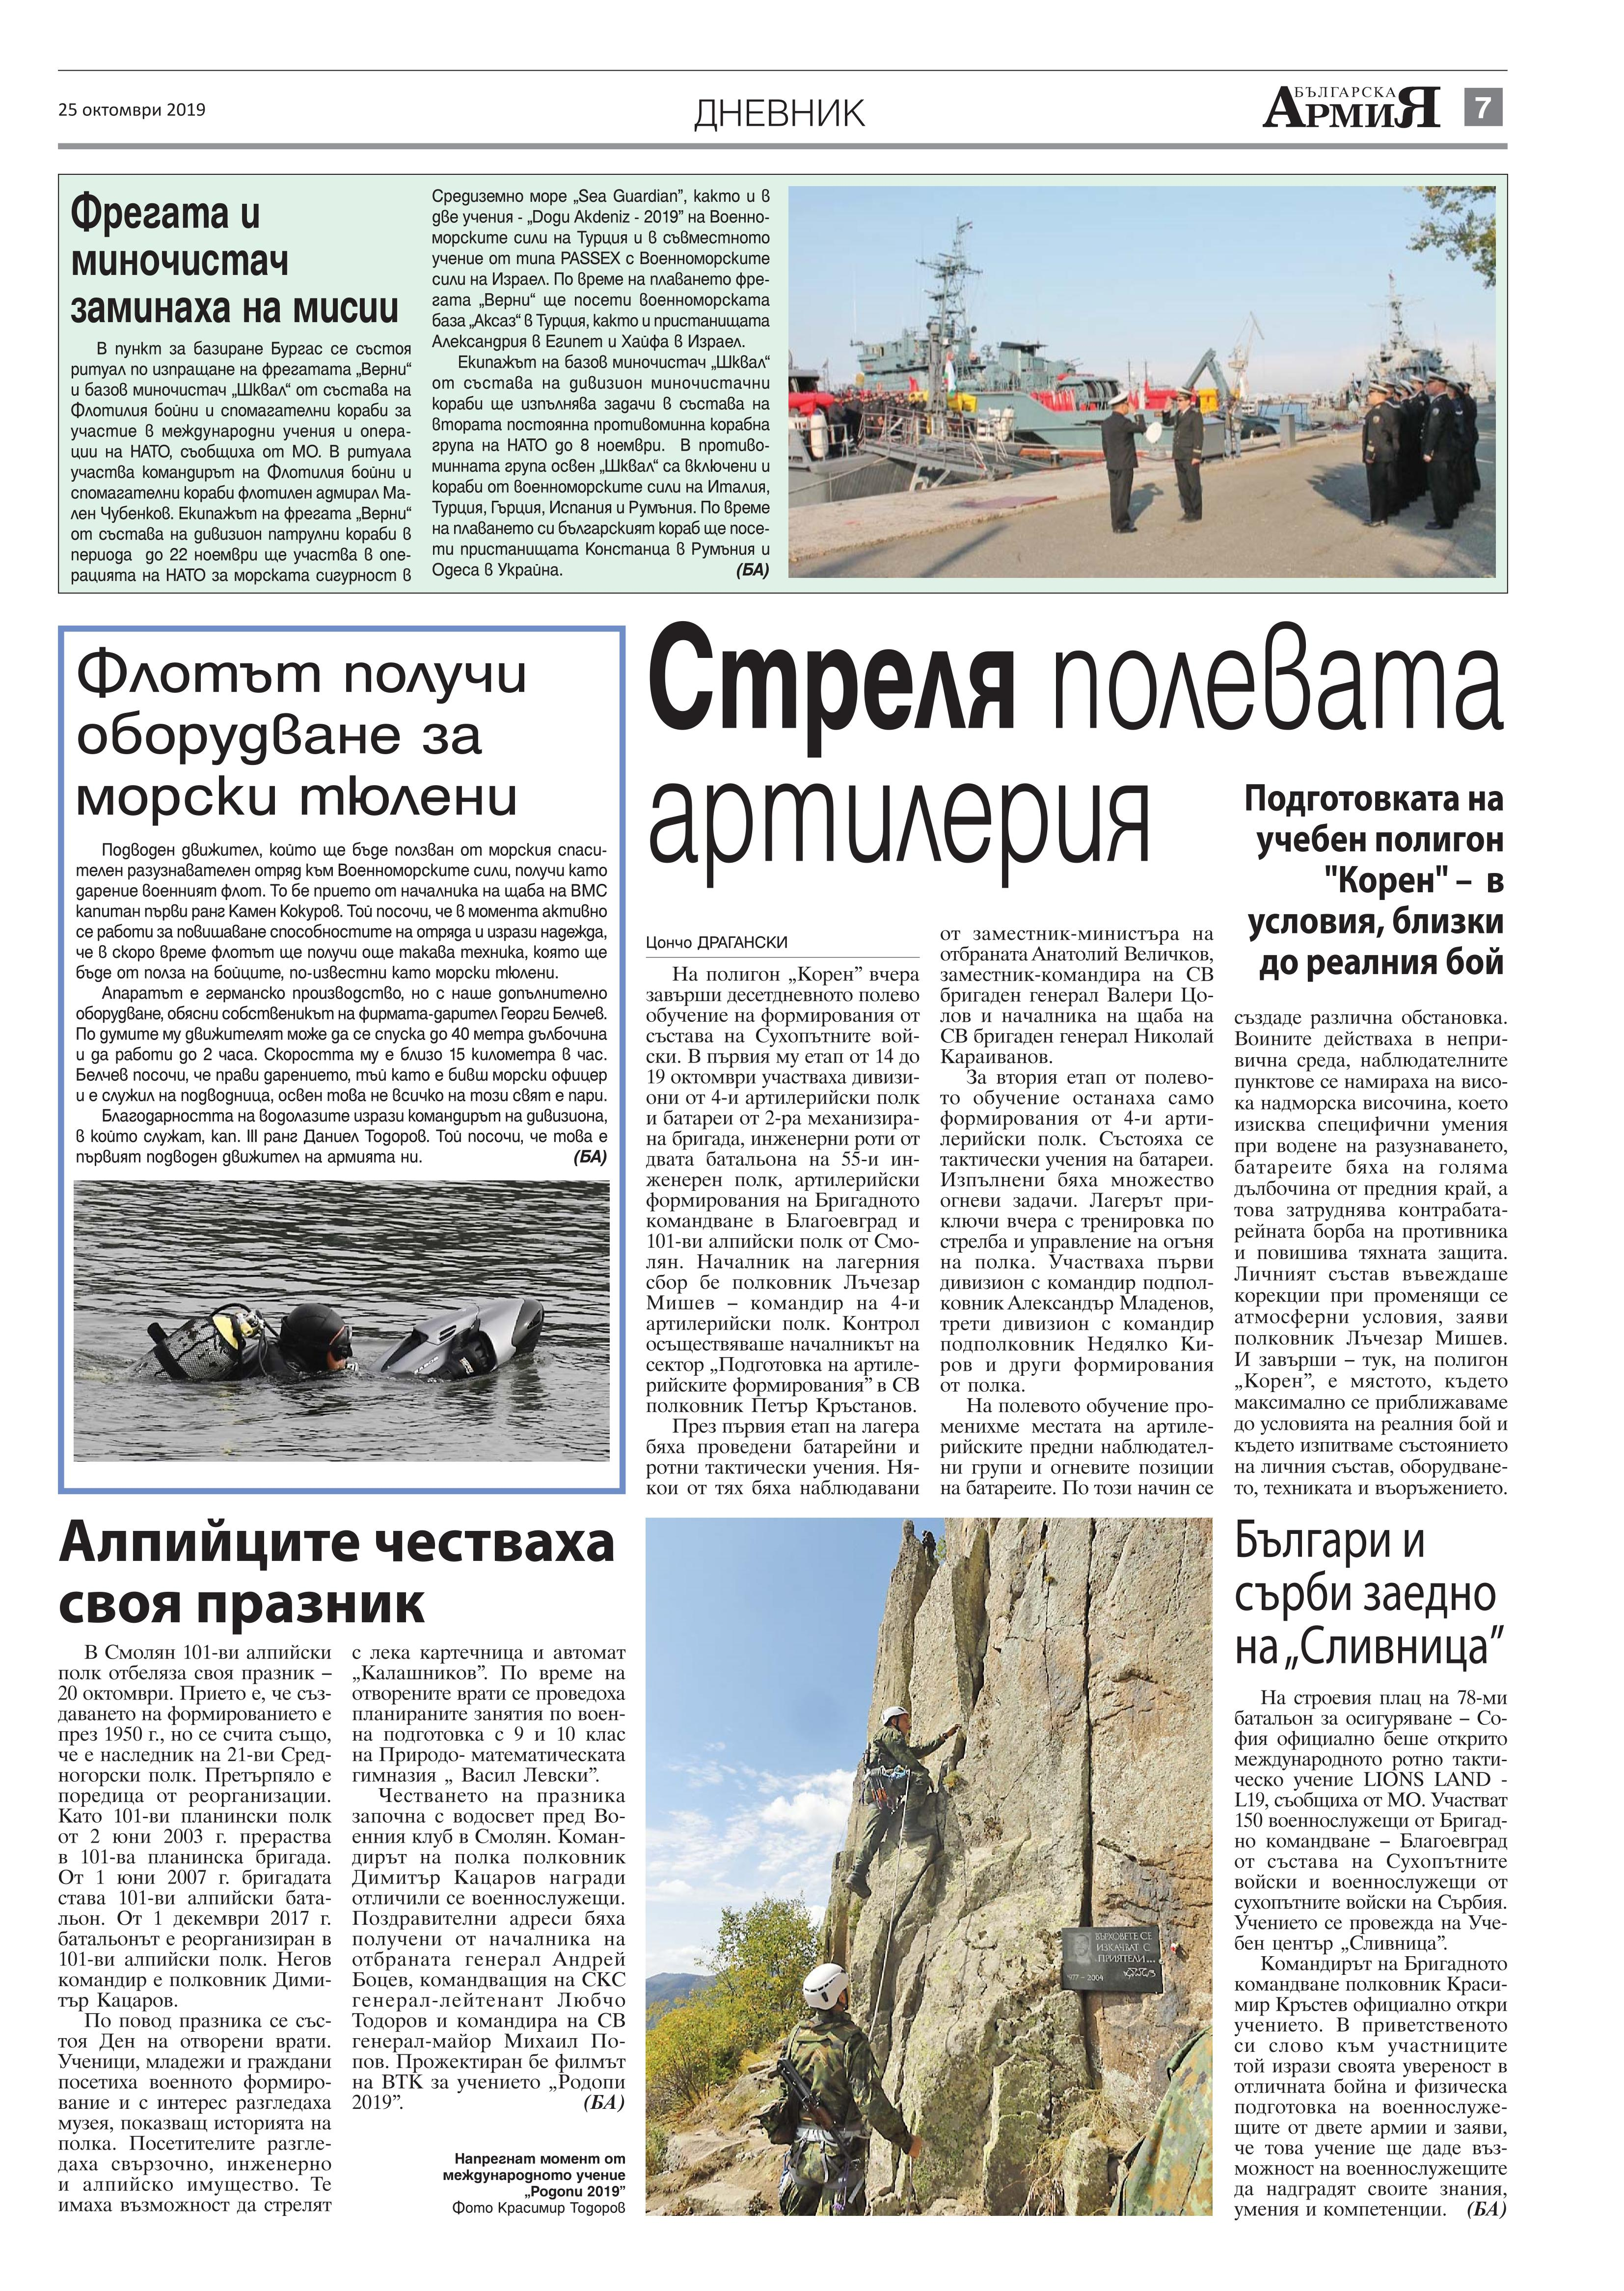 https://www.armymedia.bg/wp-content/uploads/2015/06/07.page1_-110.jpg